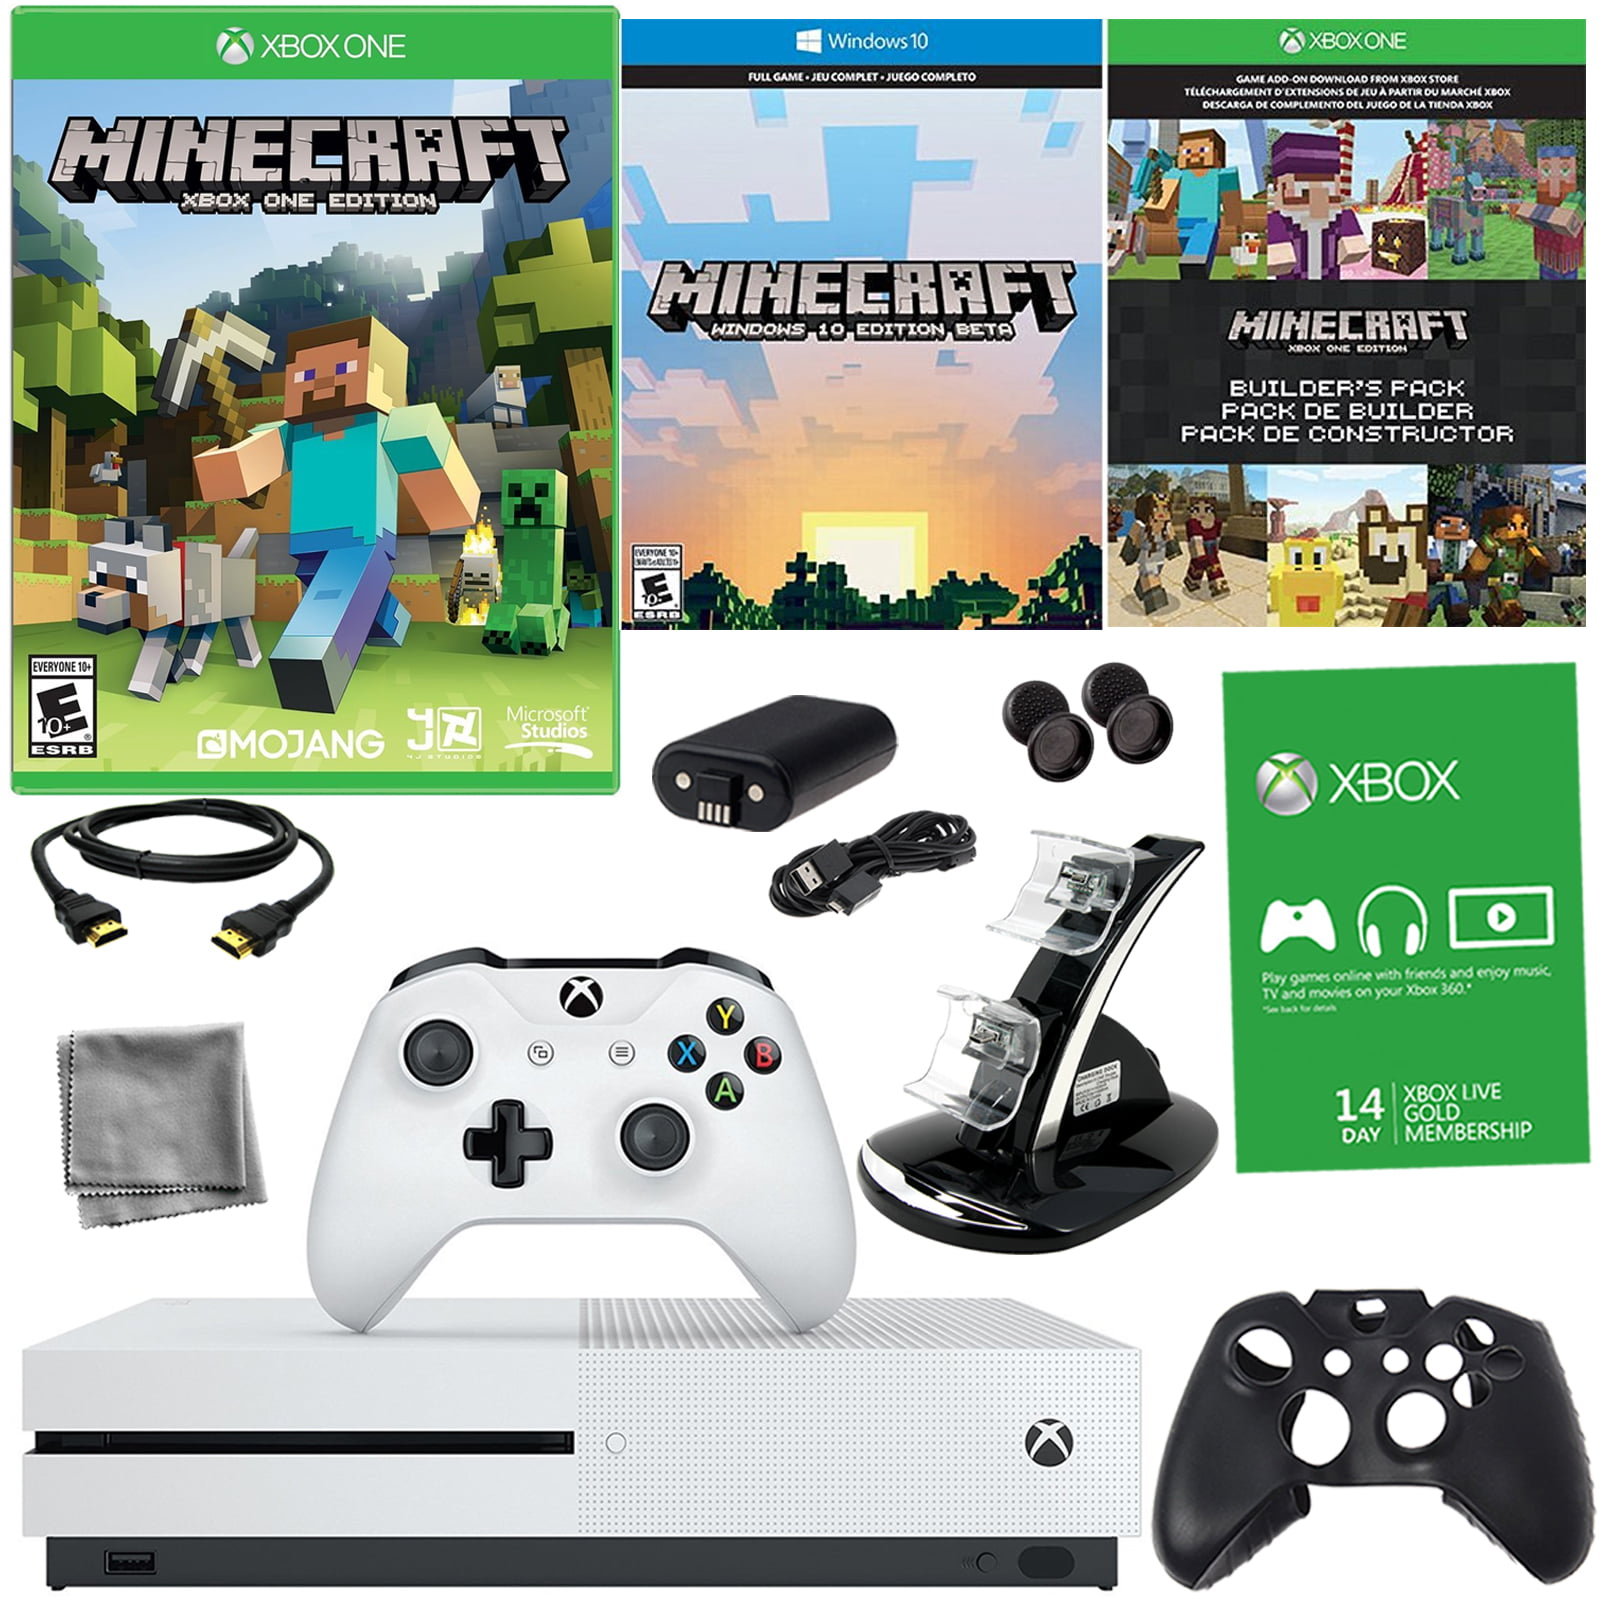 Xbox One S 500GB Minecraft Bundle With 8-in-1 Kit En VeoyCompro